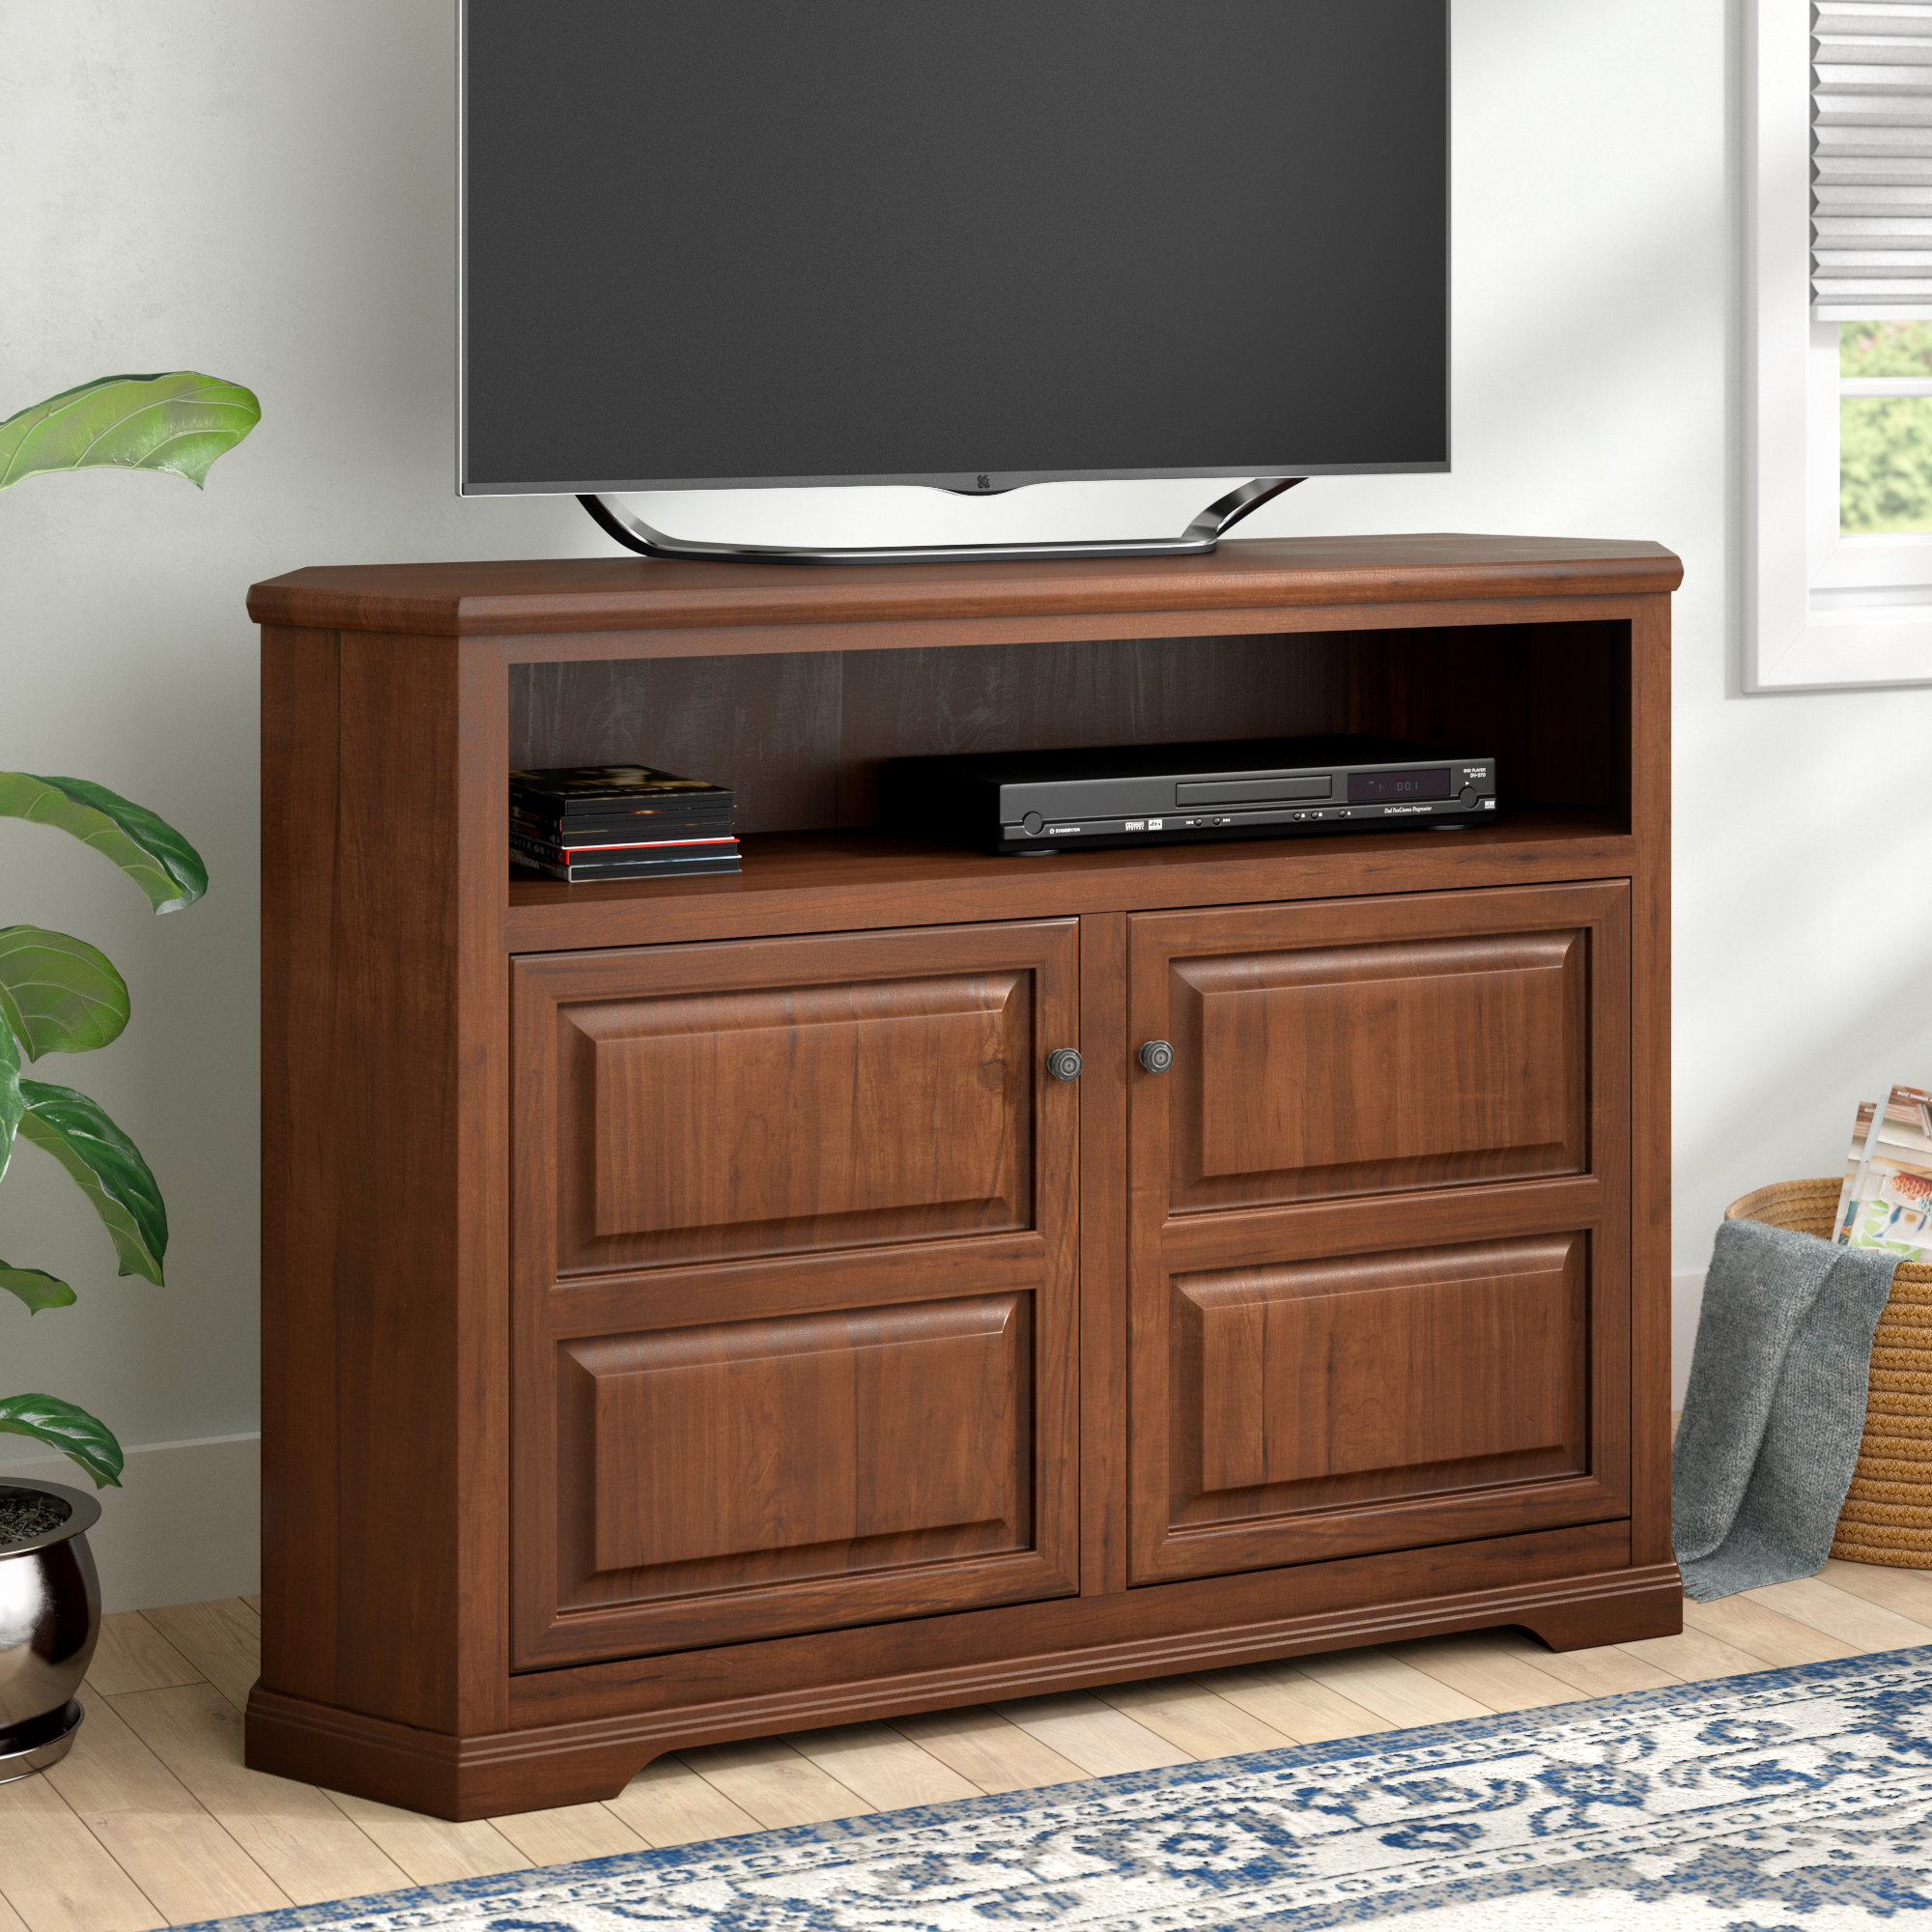 40 49 Inches Tall Tv Stands You'll Love | Wayfair For Kenzie 60 Inch Open Display Tv Stands (View 8 of 30)